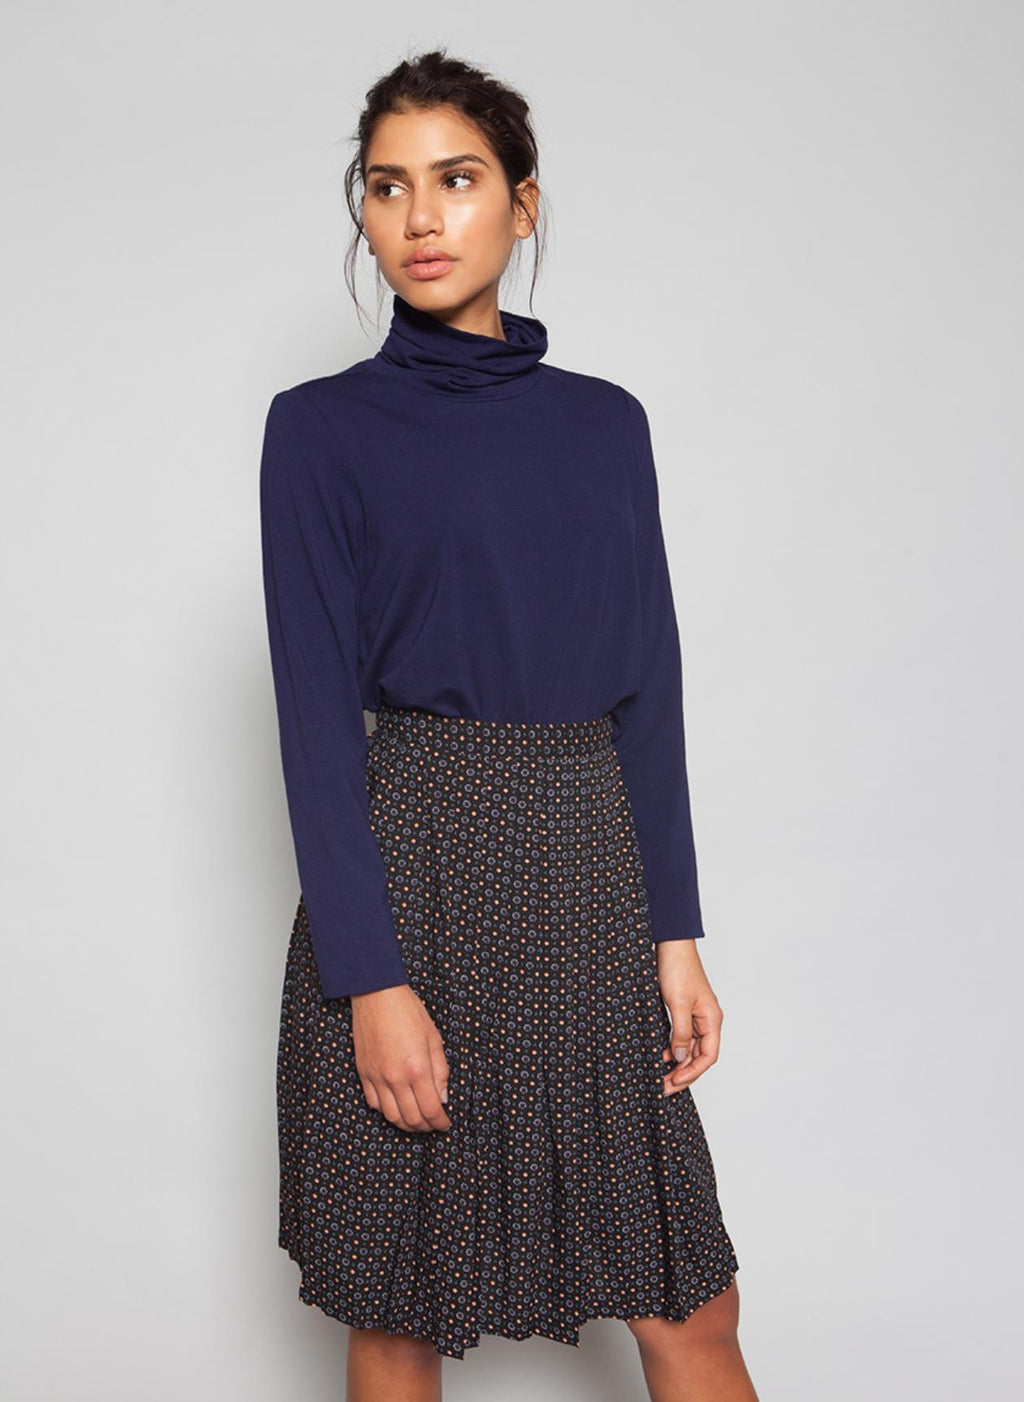 ANN TURTLENECK W - BROOKLYN INDUSTRIES